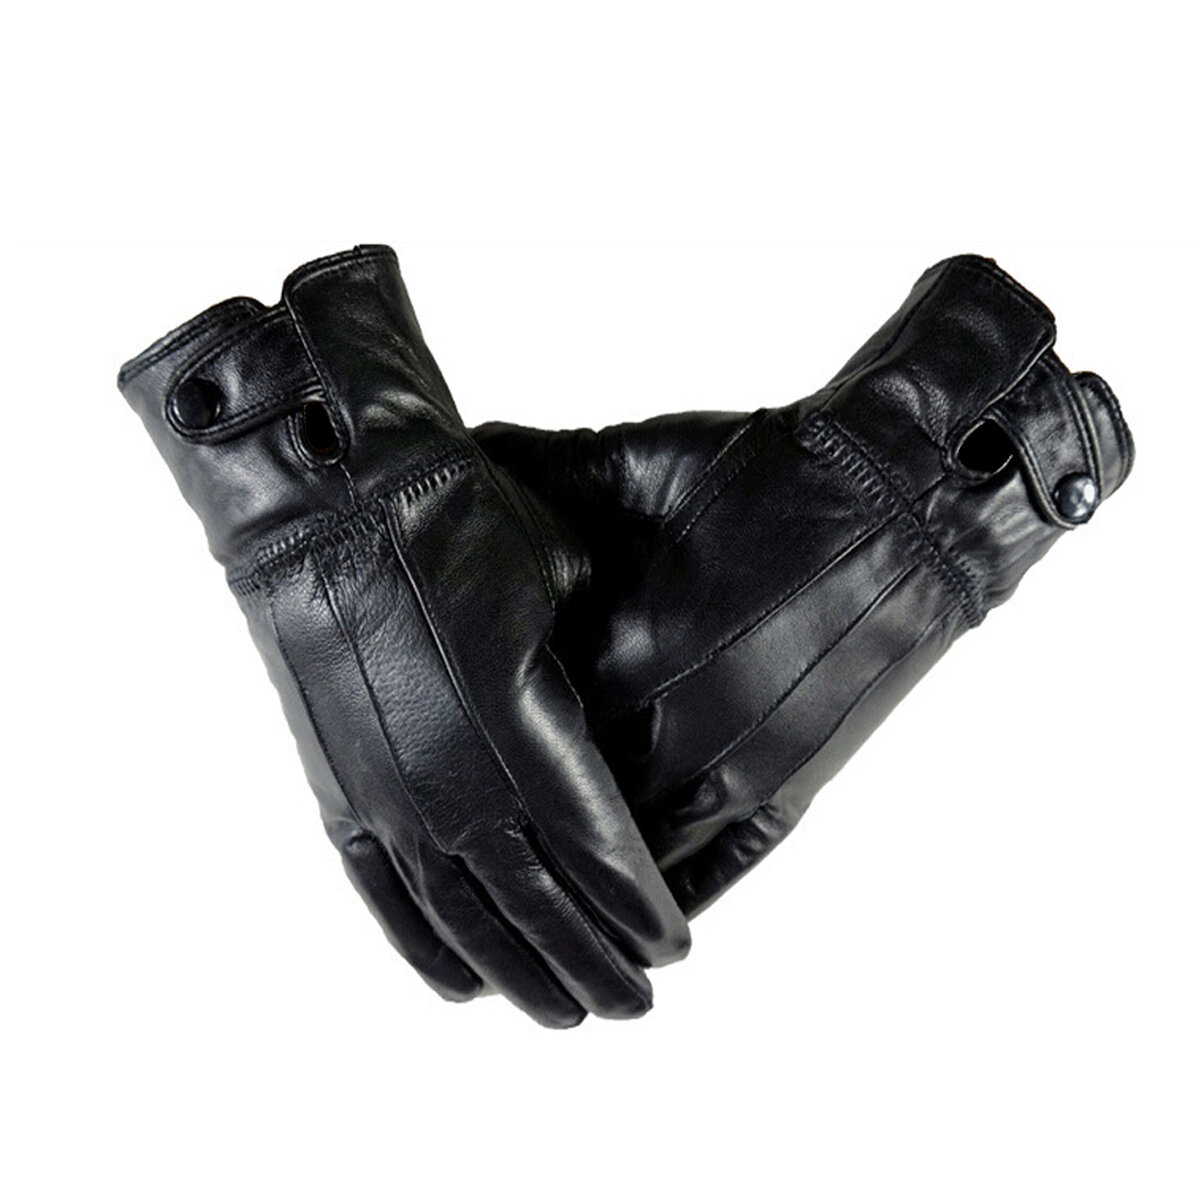 Touch Screen Winter Warm Thermal Gloves Ski Snow Snowboard CyclingWaterproof фото